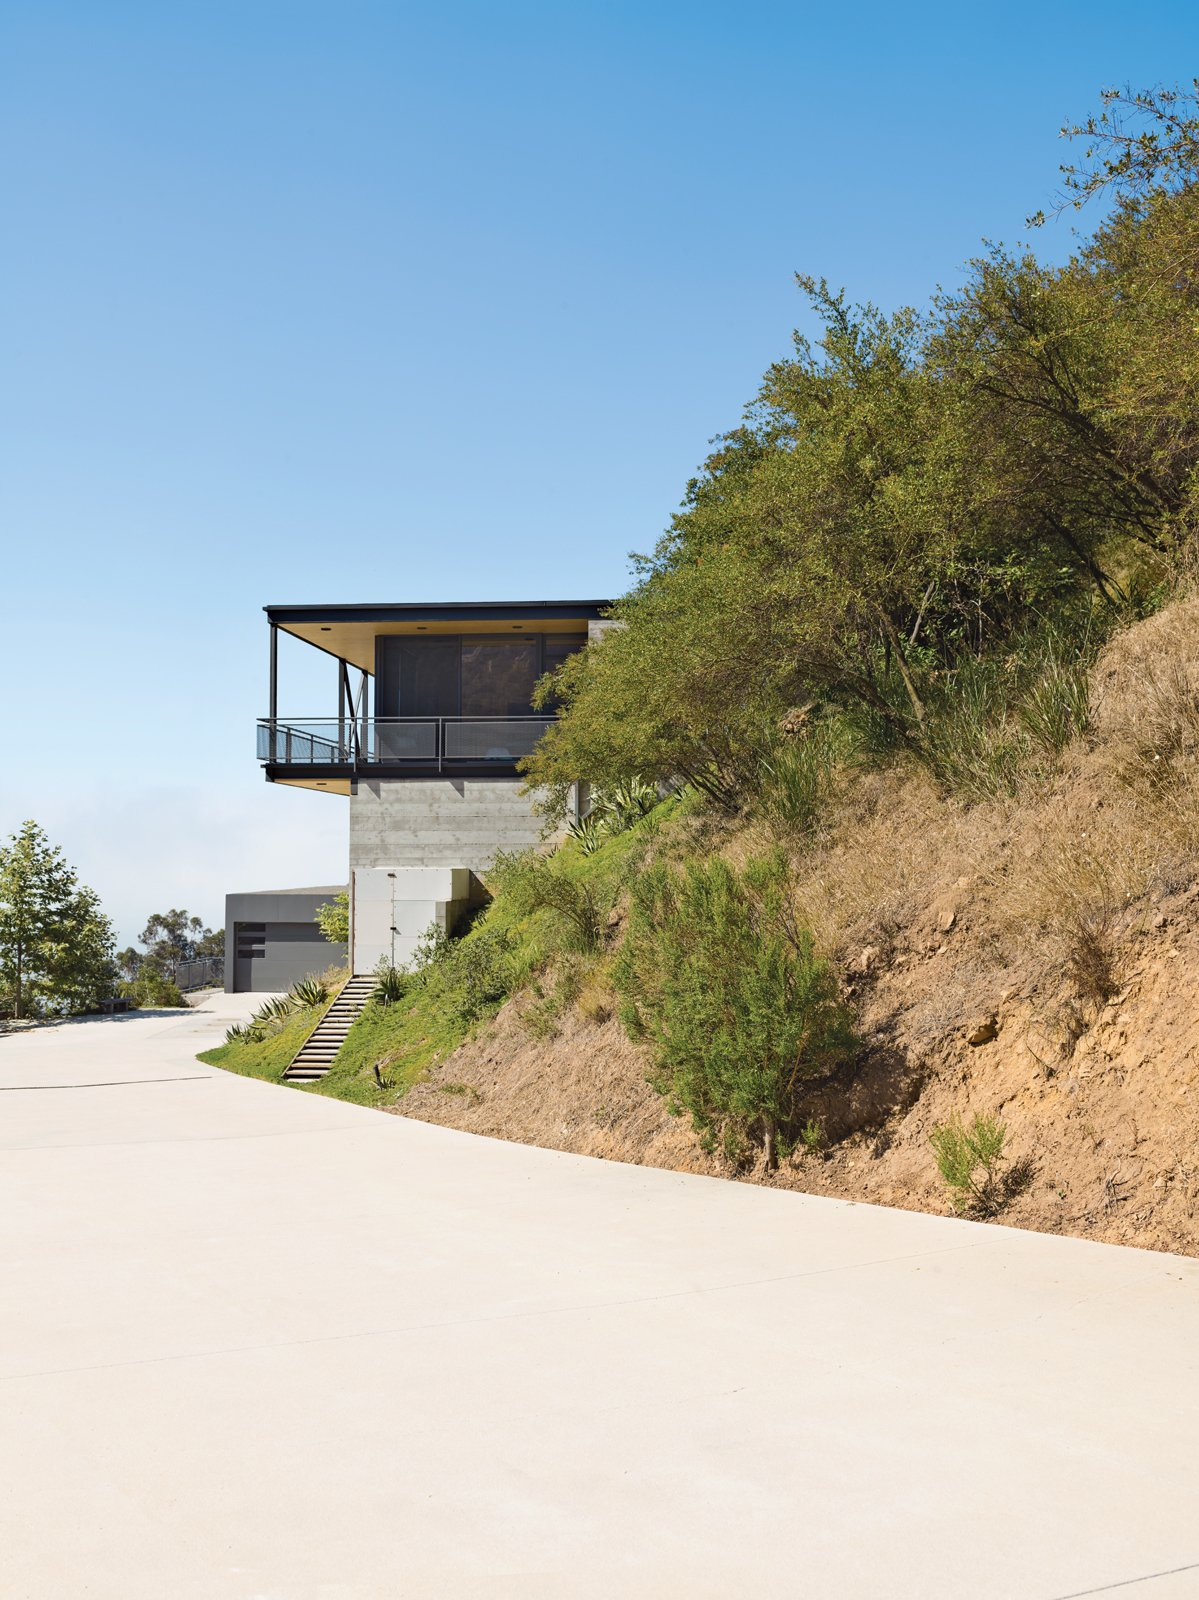 To deal with a Malibu site's sharp incline, architect Bruce Bolander set the steel, concrete, and glass house on caissons. A deep wraparound porch nearly doubles the home's living space and offers the ideal perch for outdoor dining and taking in spectacular views of the surrounding canyon. The garage serves as resident Dave Keffer's home office. Photo by J Bennett Fitts. Tagged: Exterior, House, Flat RoofLine, and Concrete Siding Material.  Photo 4 of 9 in Malibu Canyon House with a View